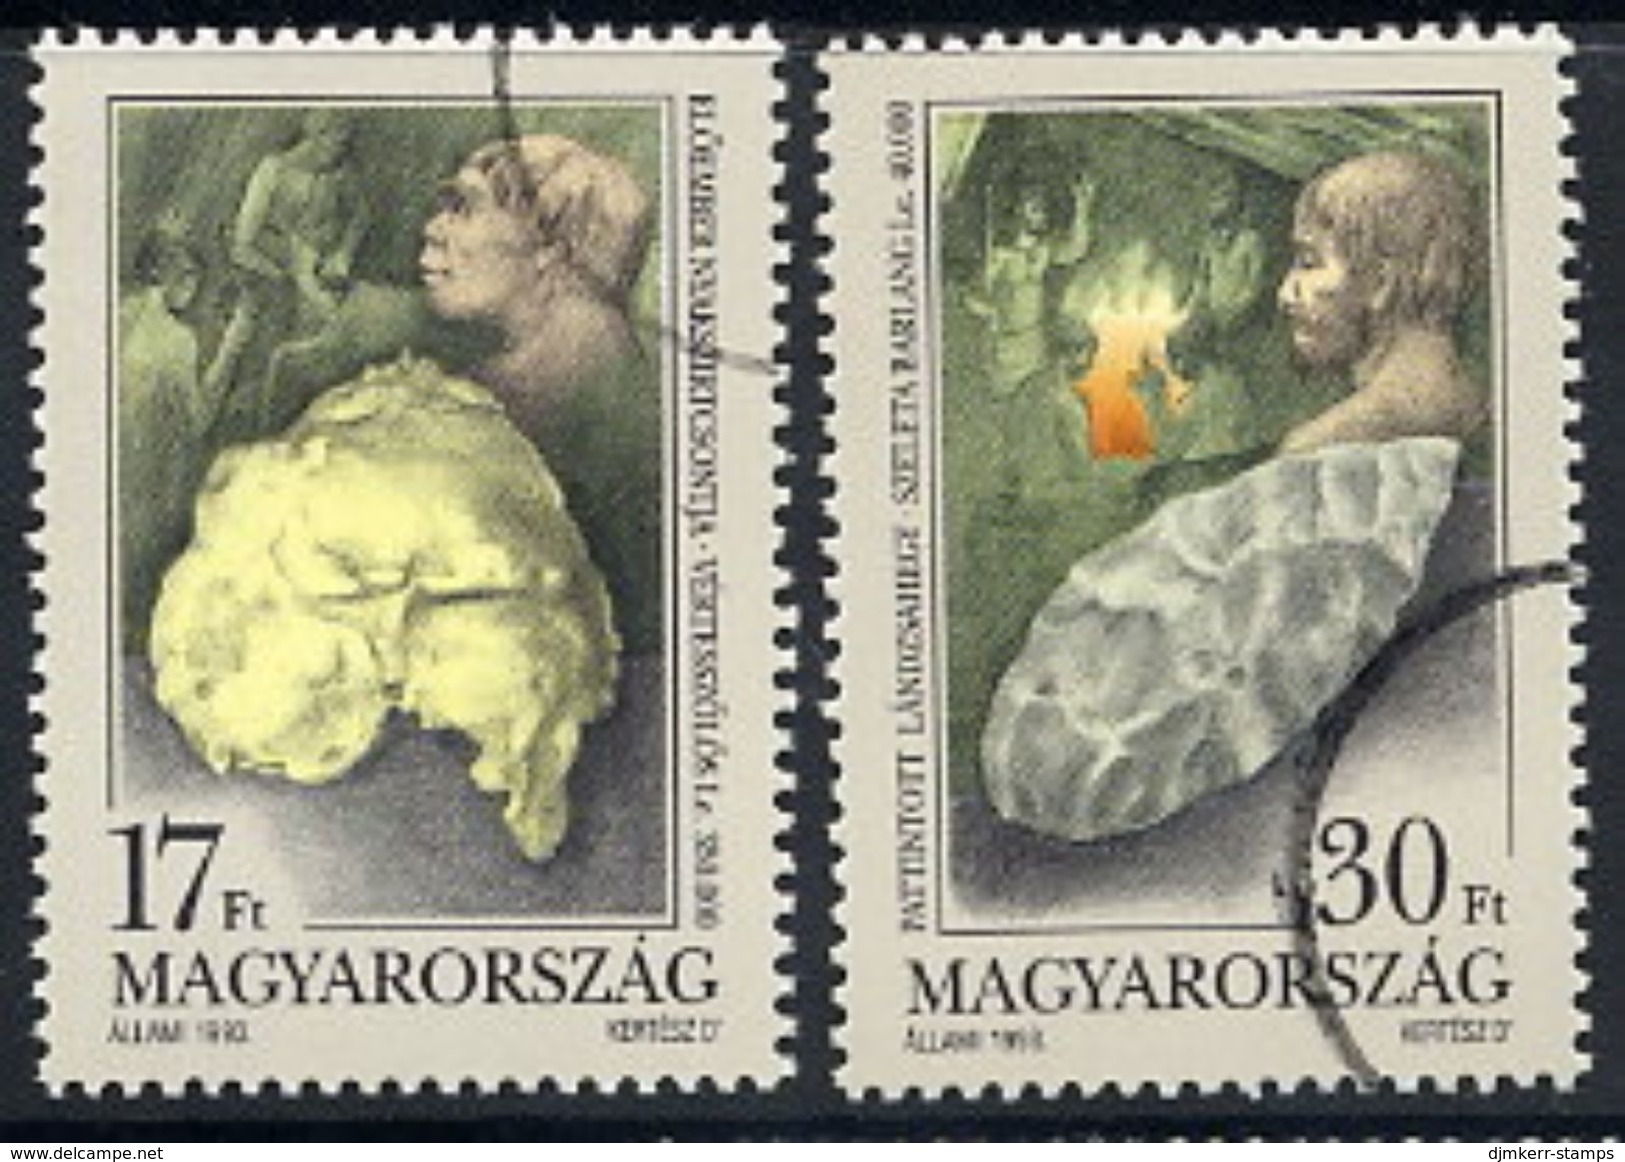 HUNGARY 1993 Archaeological Finds With Specimen / Muster Cancellation MNH / **.  Michel 4266-67 - Hungary